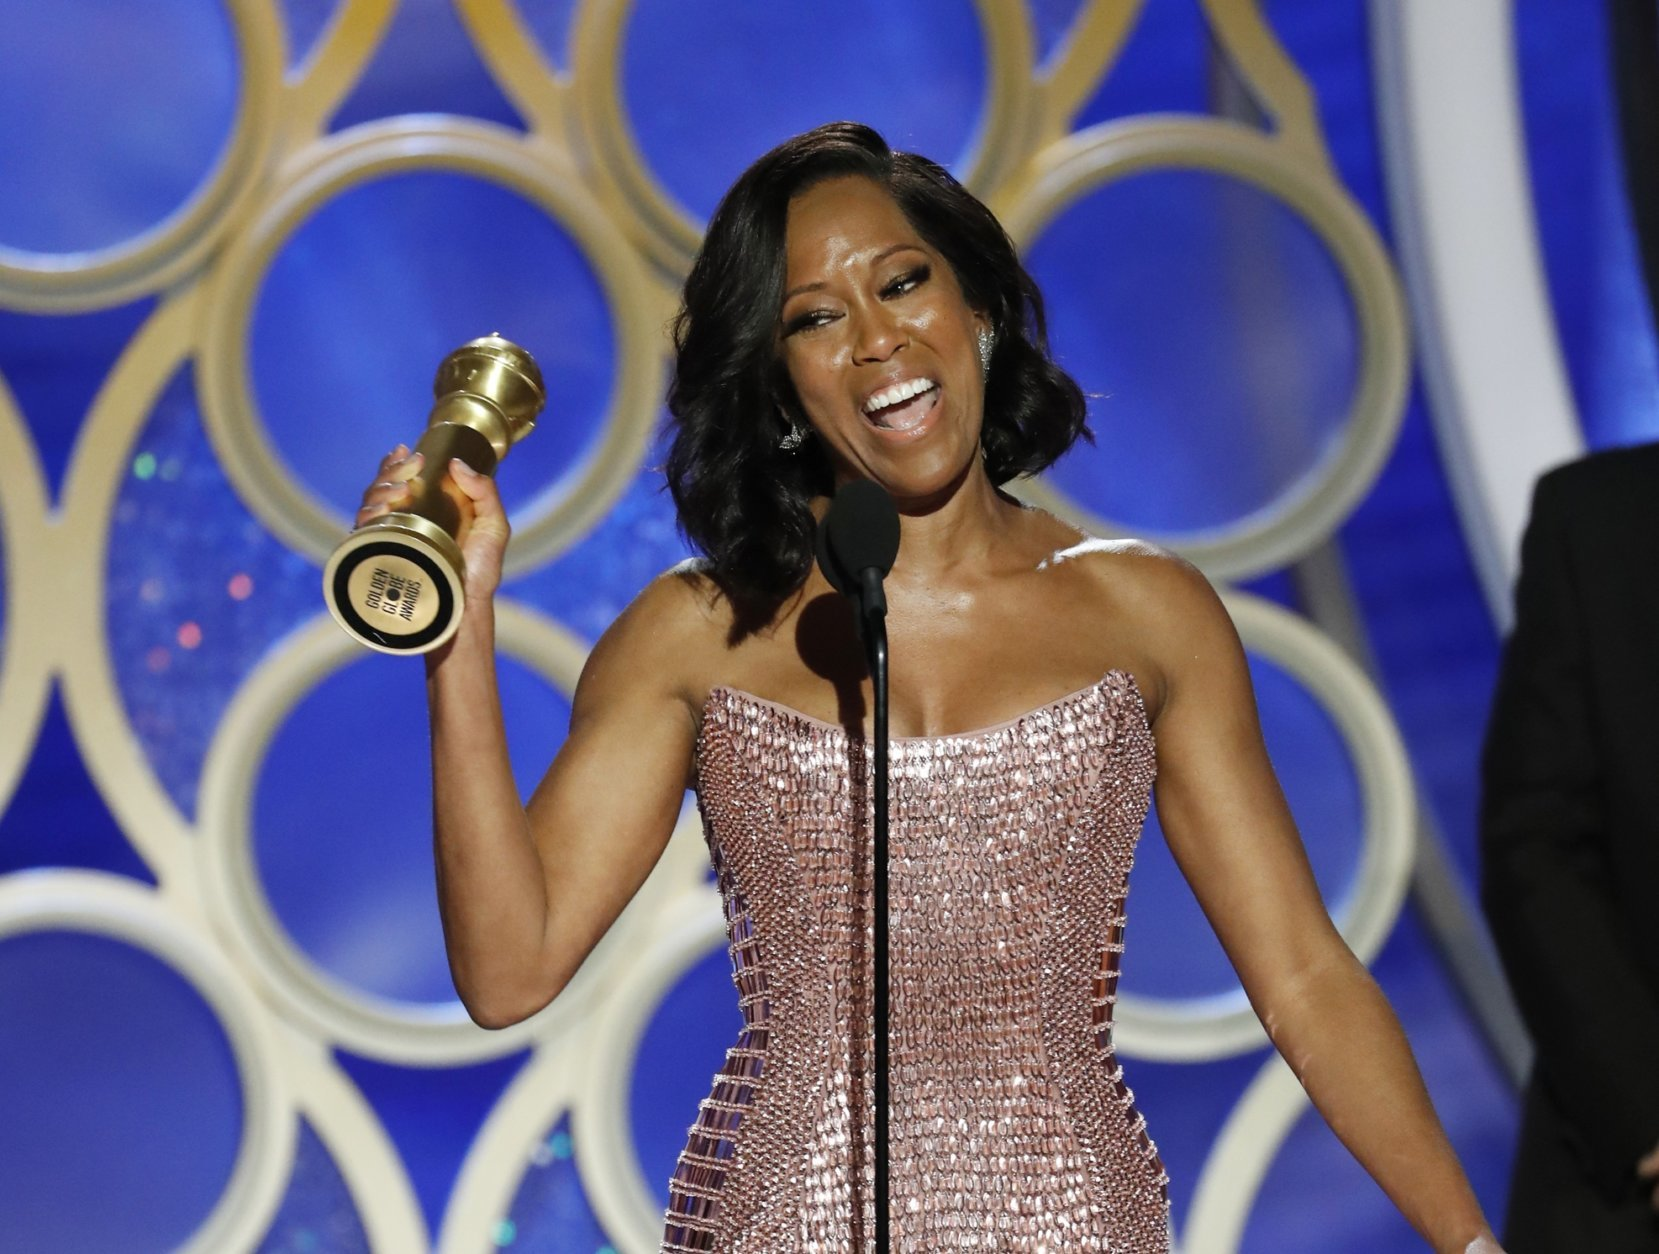 """This image released by NBC shows Regina King accepting the award for best supporting actress in a motion picture for her role in """"If Beale Street Could Talk"""" during the 76th Annual Golden Globe Awards at the Beverly Hilton Hotel on Sunday, Jan. 6, 2019 in Beverly Hills, Calif. (Paul Drinkwater/NBC via AP)"""